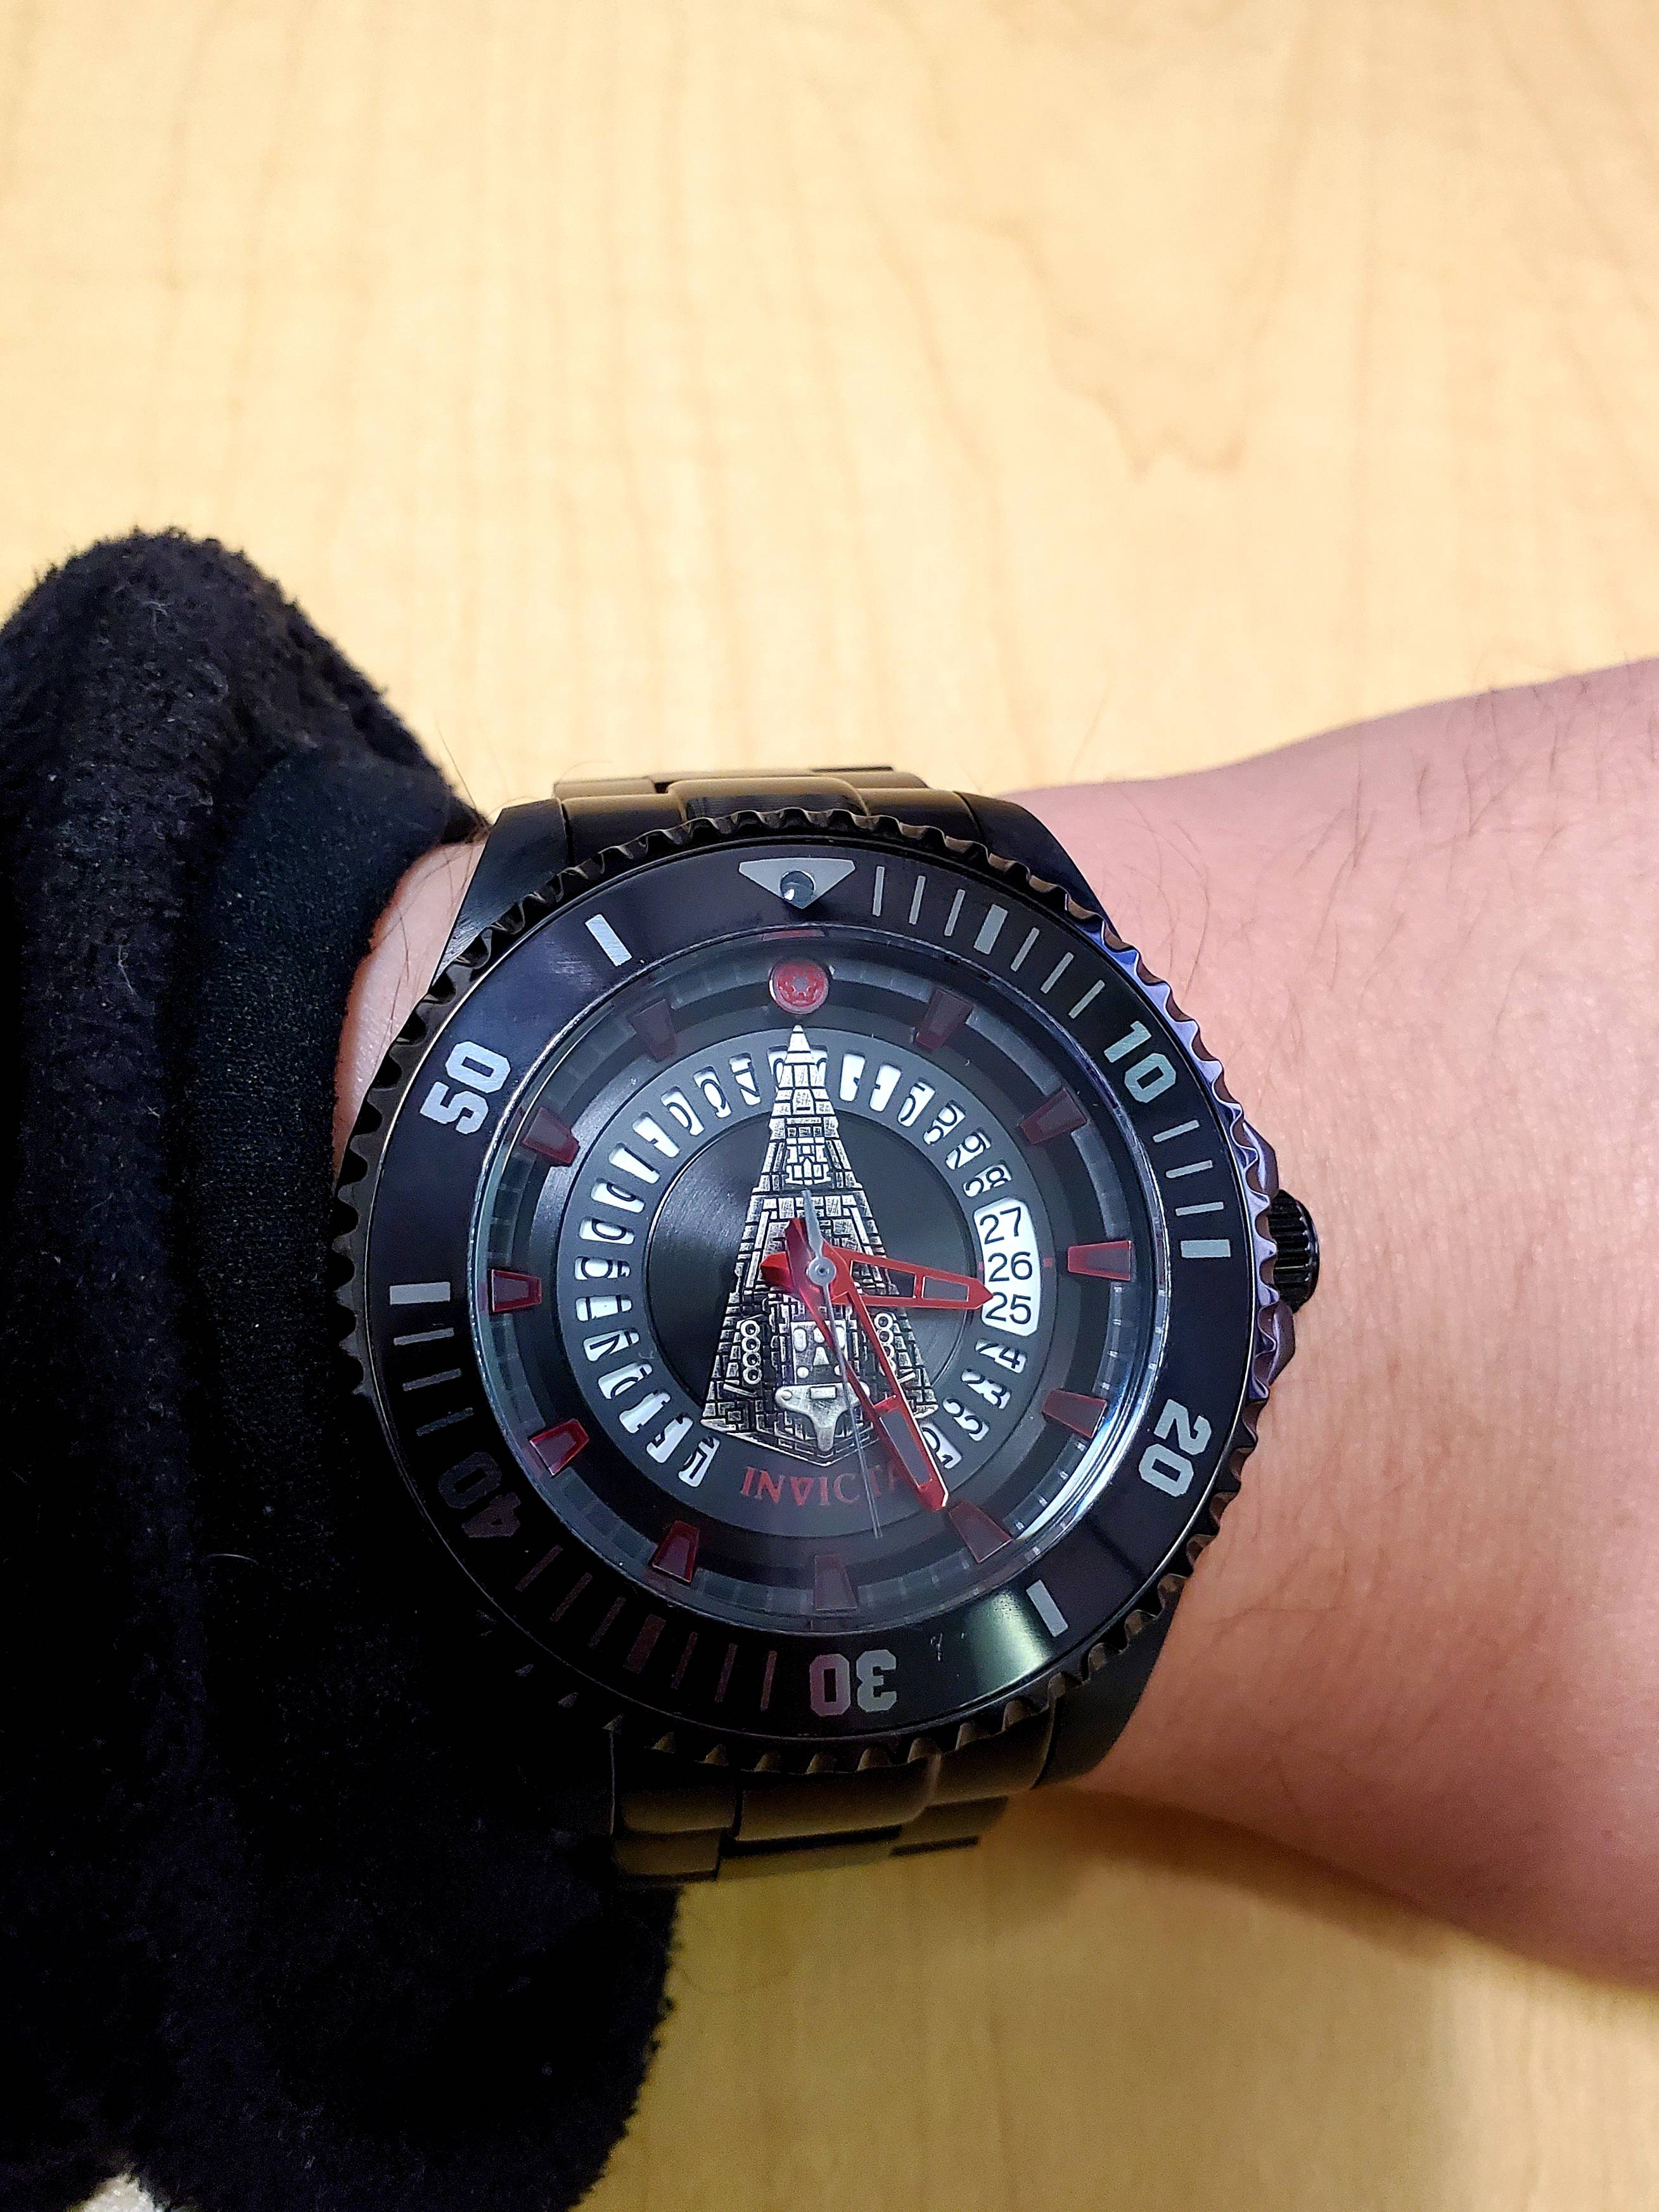 Keeping time with the Empire